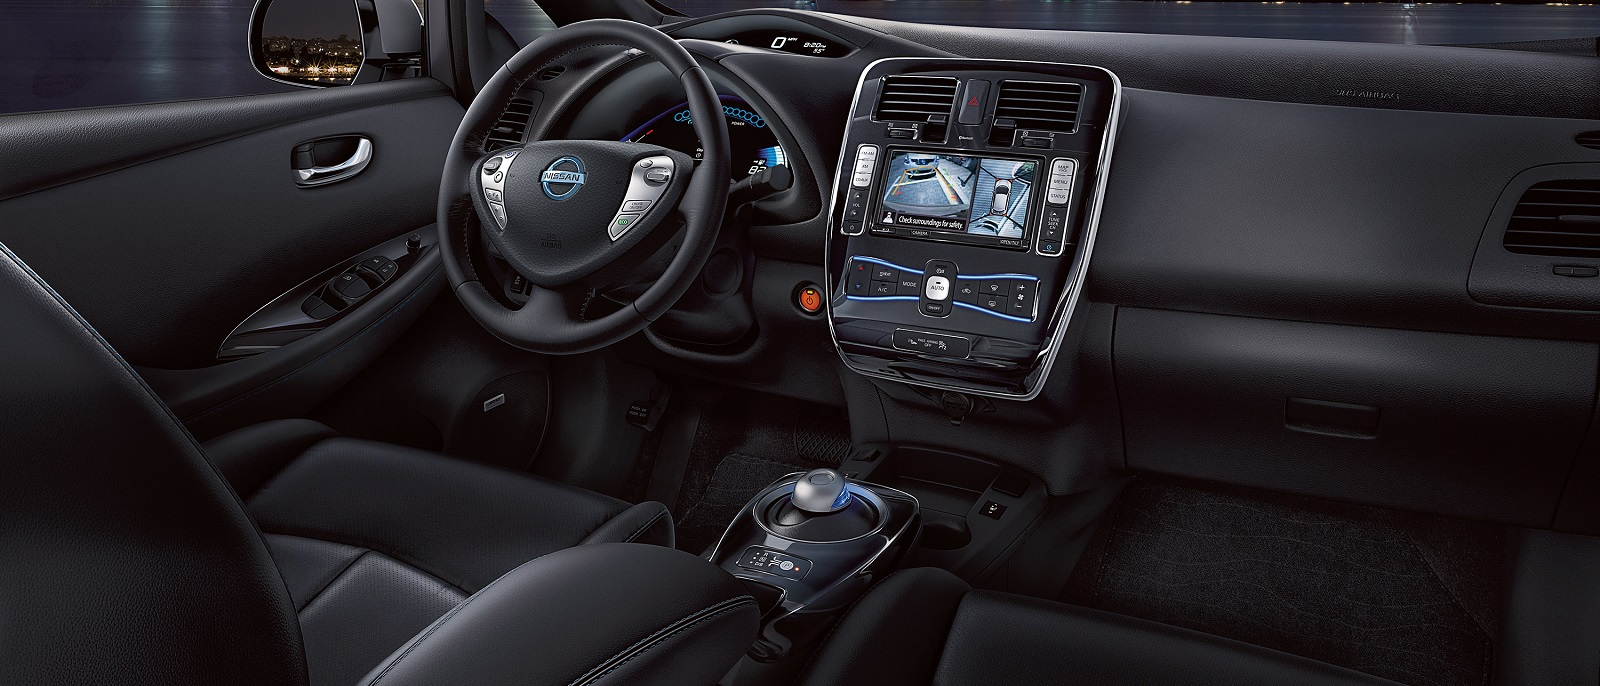 Nissan Dealership Indianapolis >> 2016 Nissan Leaf Available in Indianapolis and Greenwood